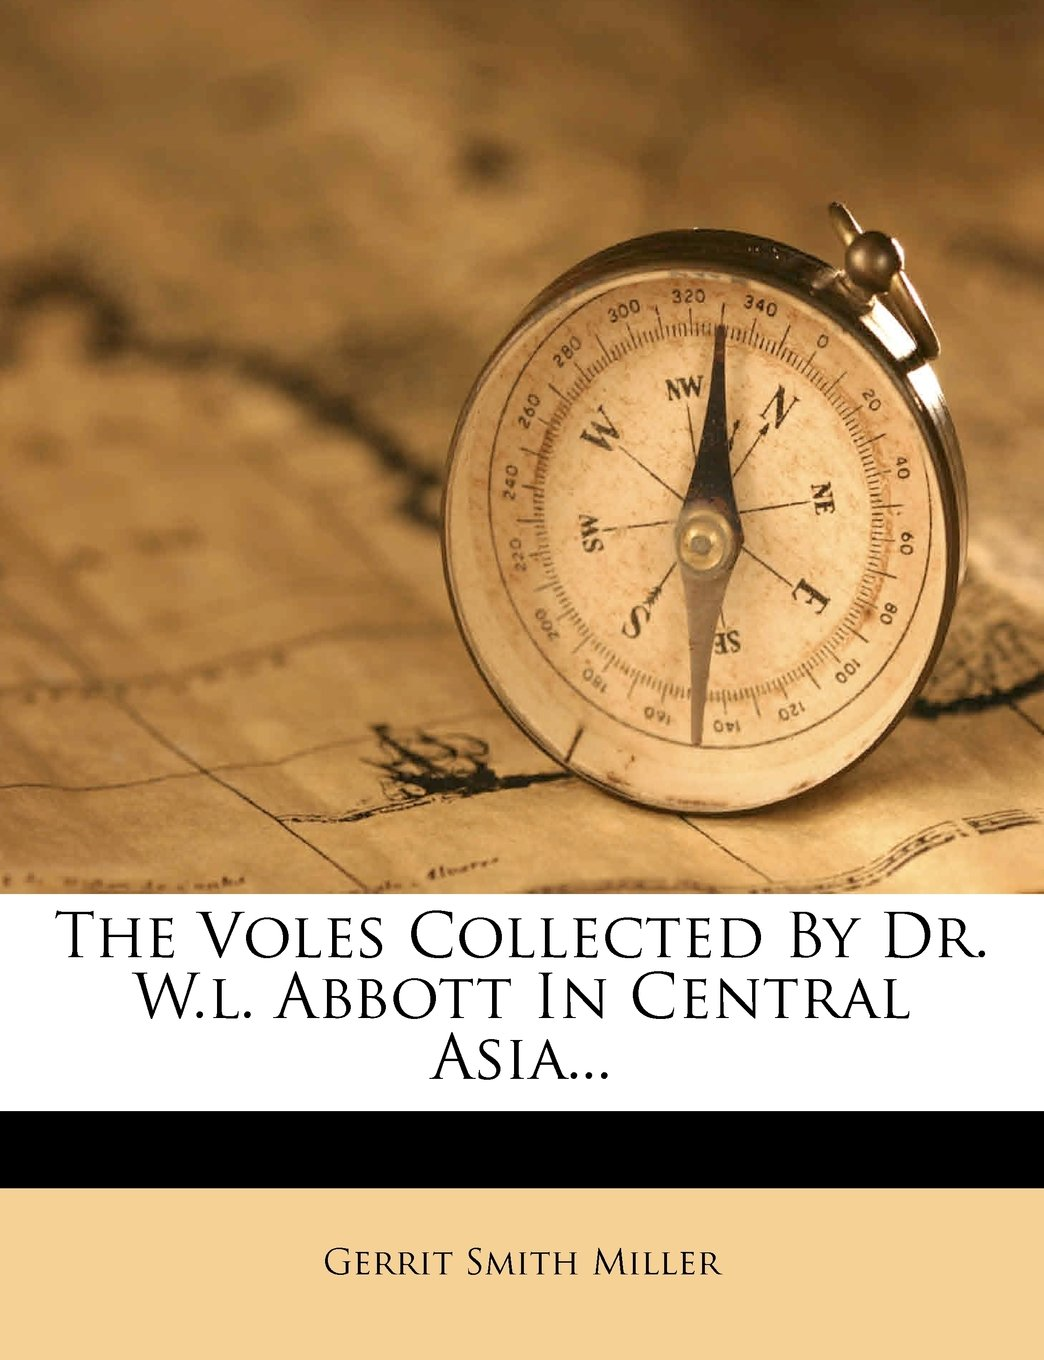 The Voles Collected By Dr. W.l. Abbott In Central Asia... Text fb2 book